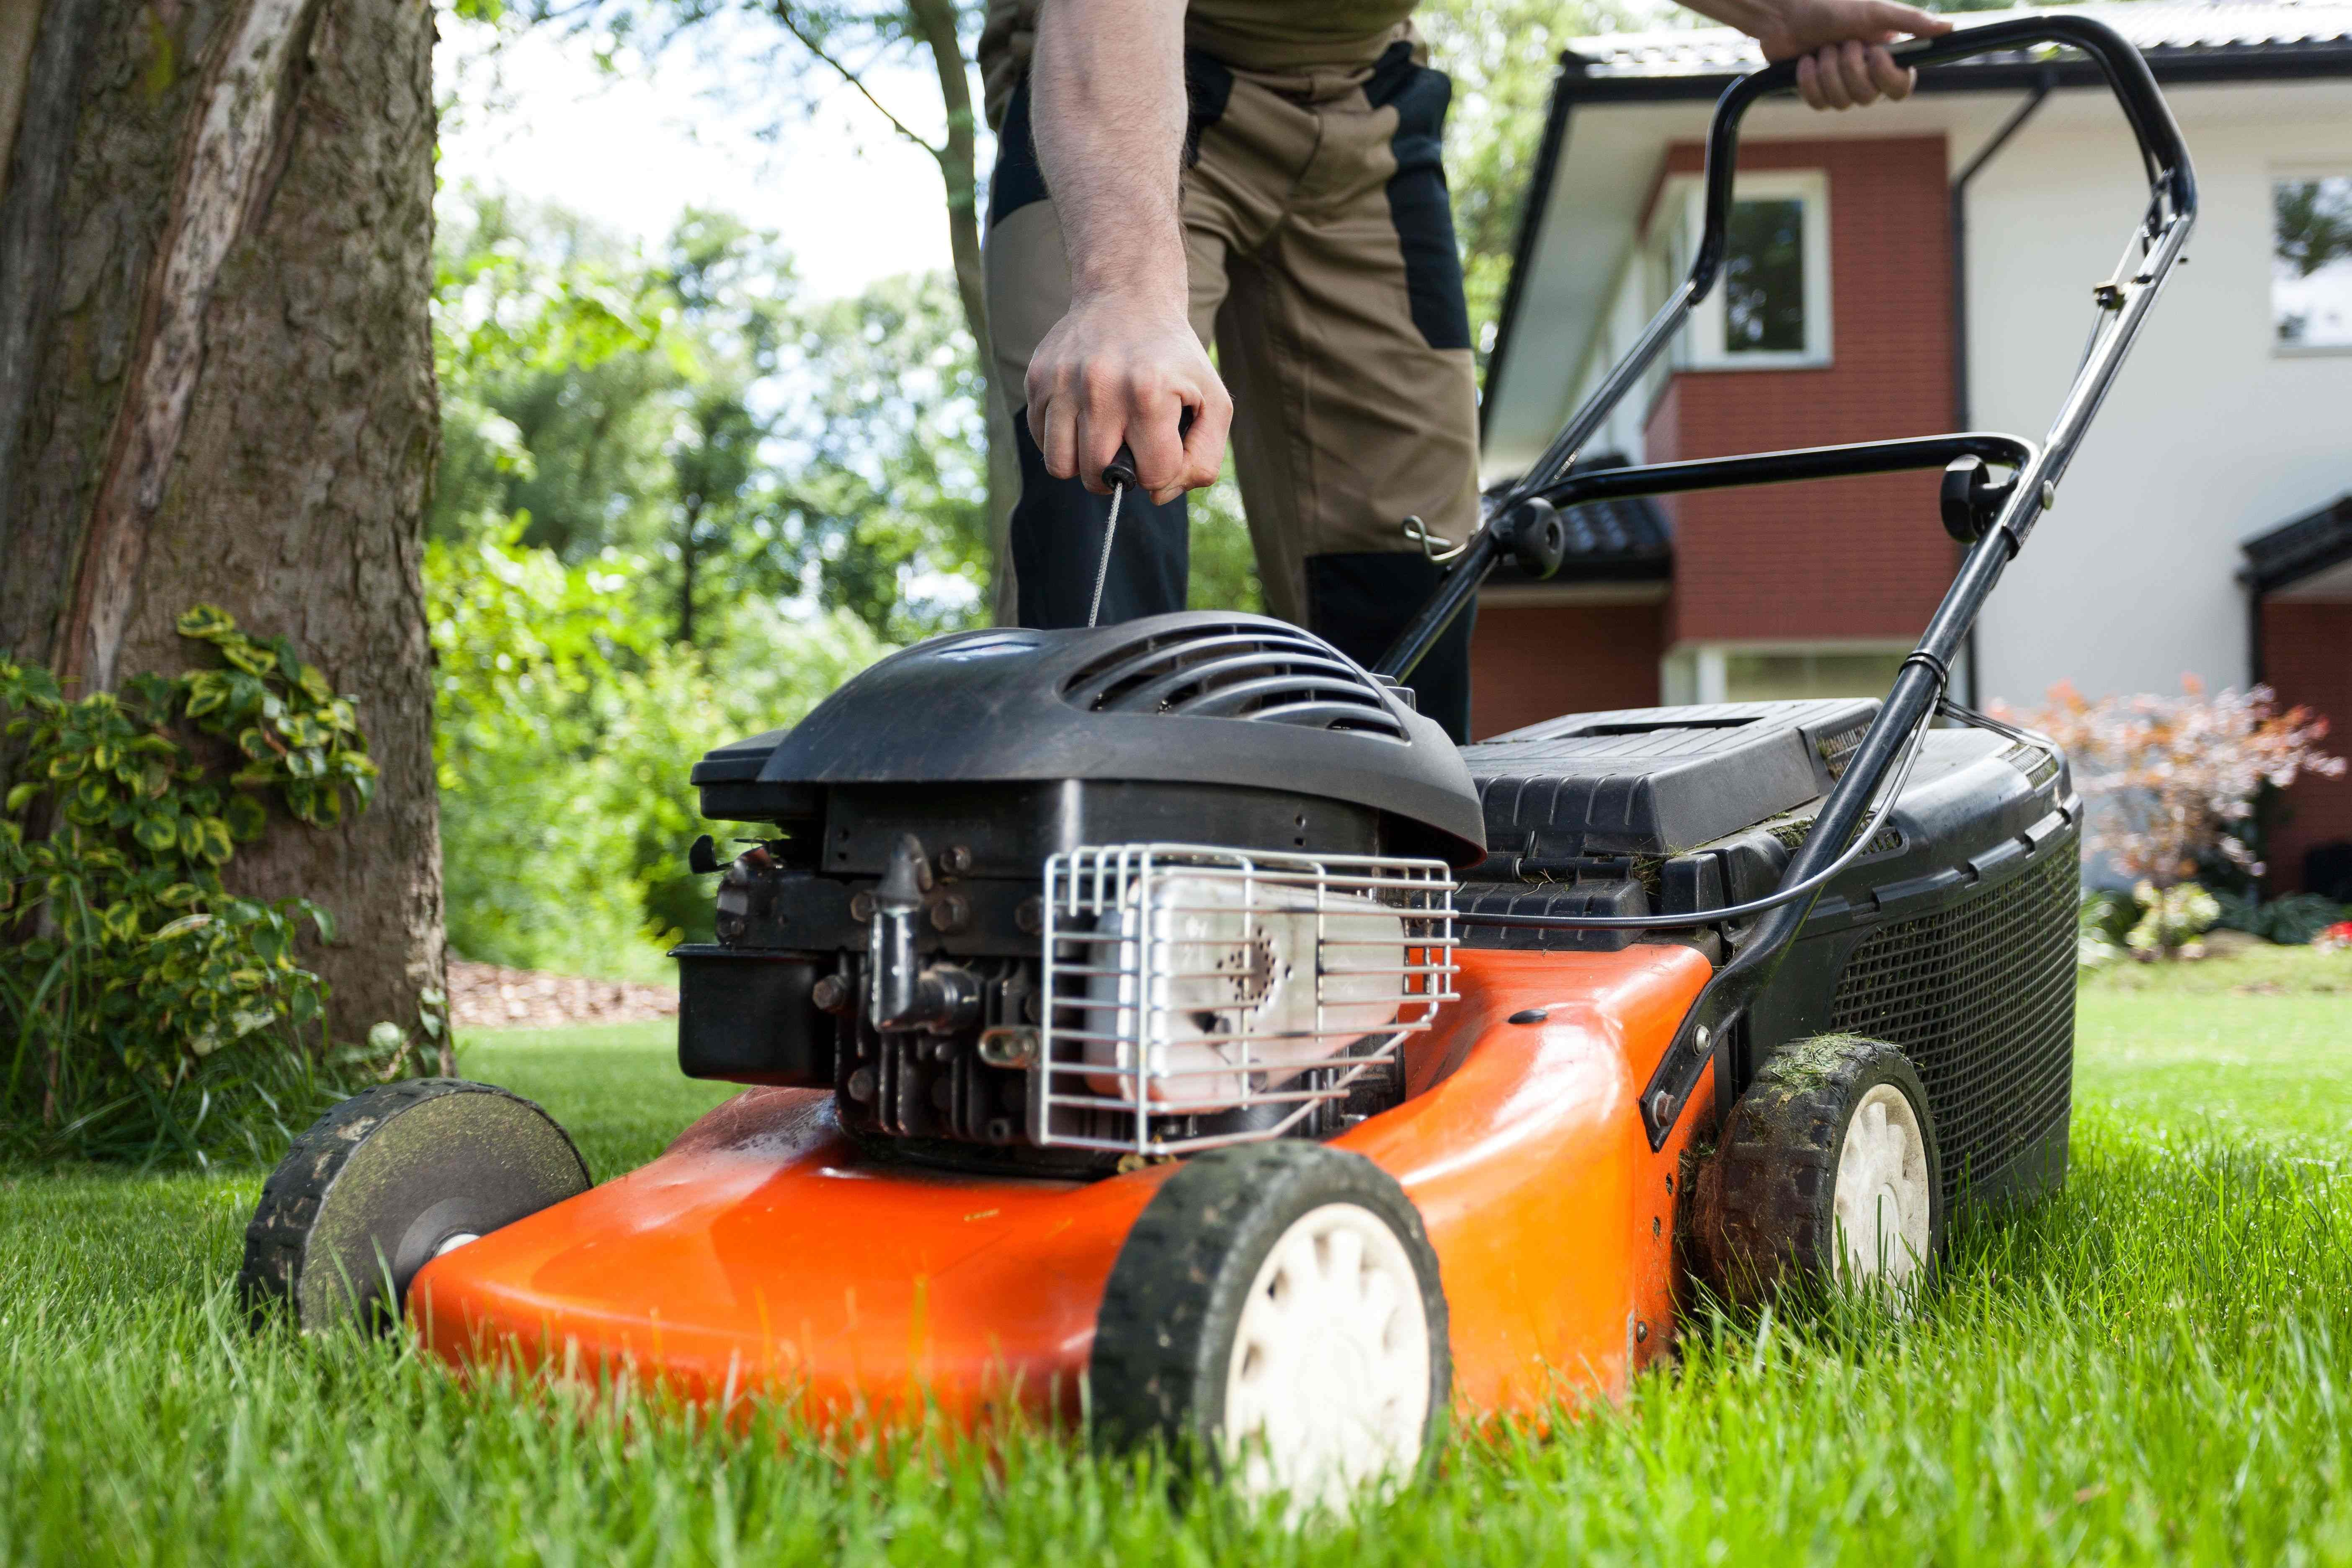 How to change your lawnmower oil